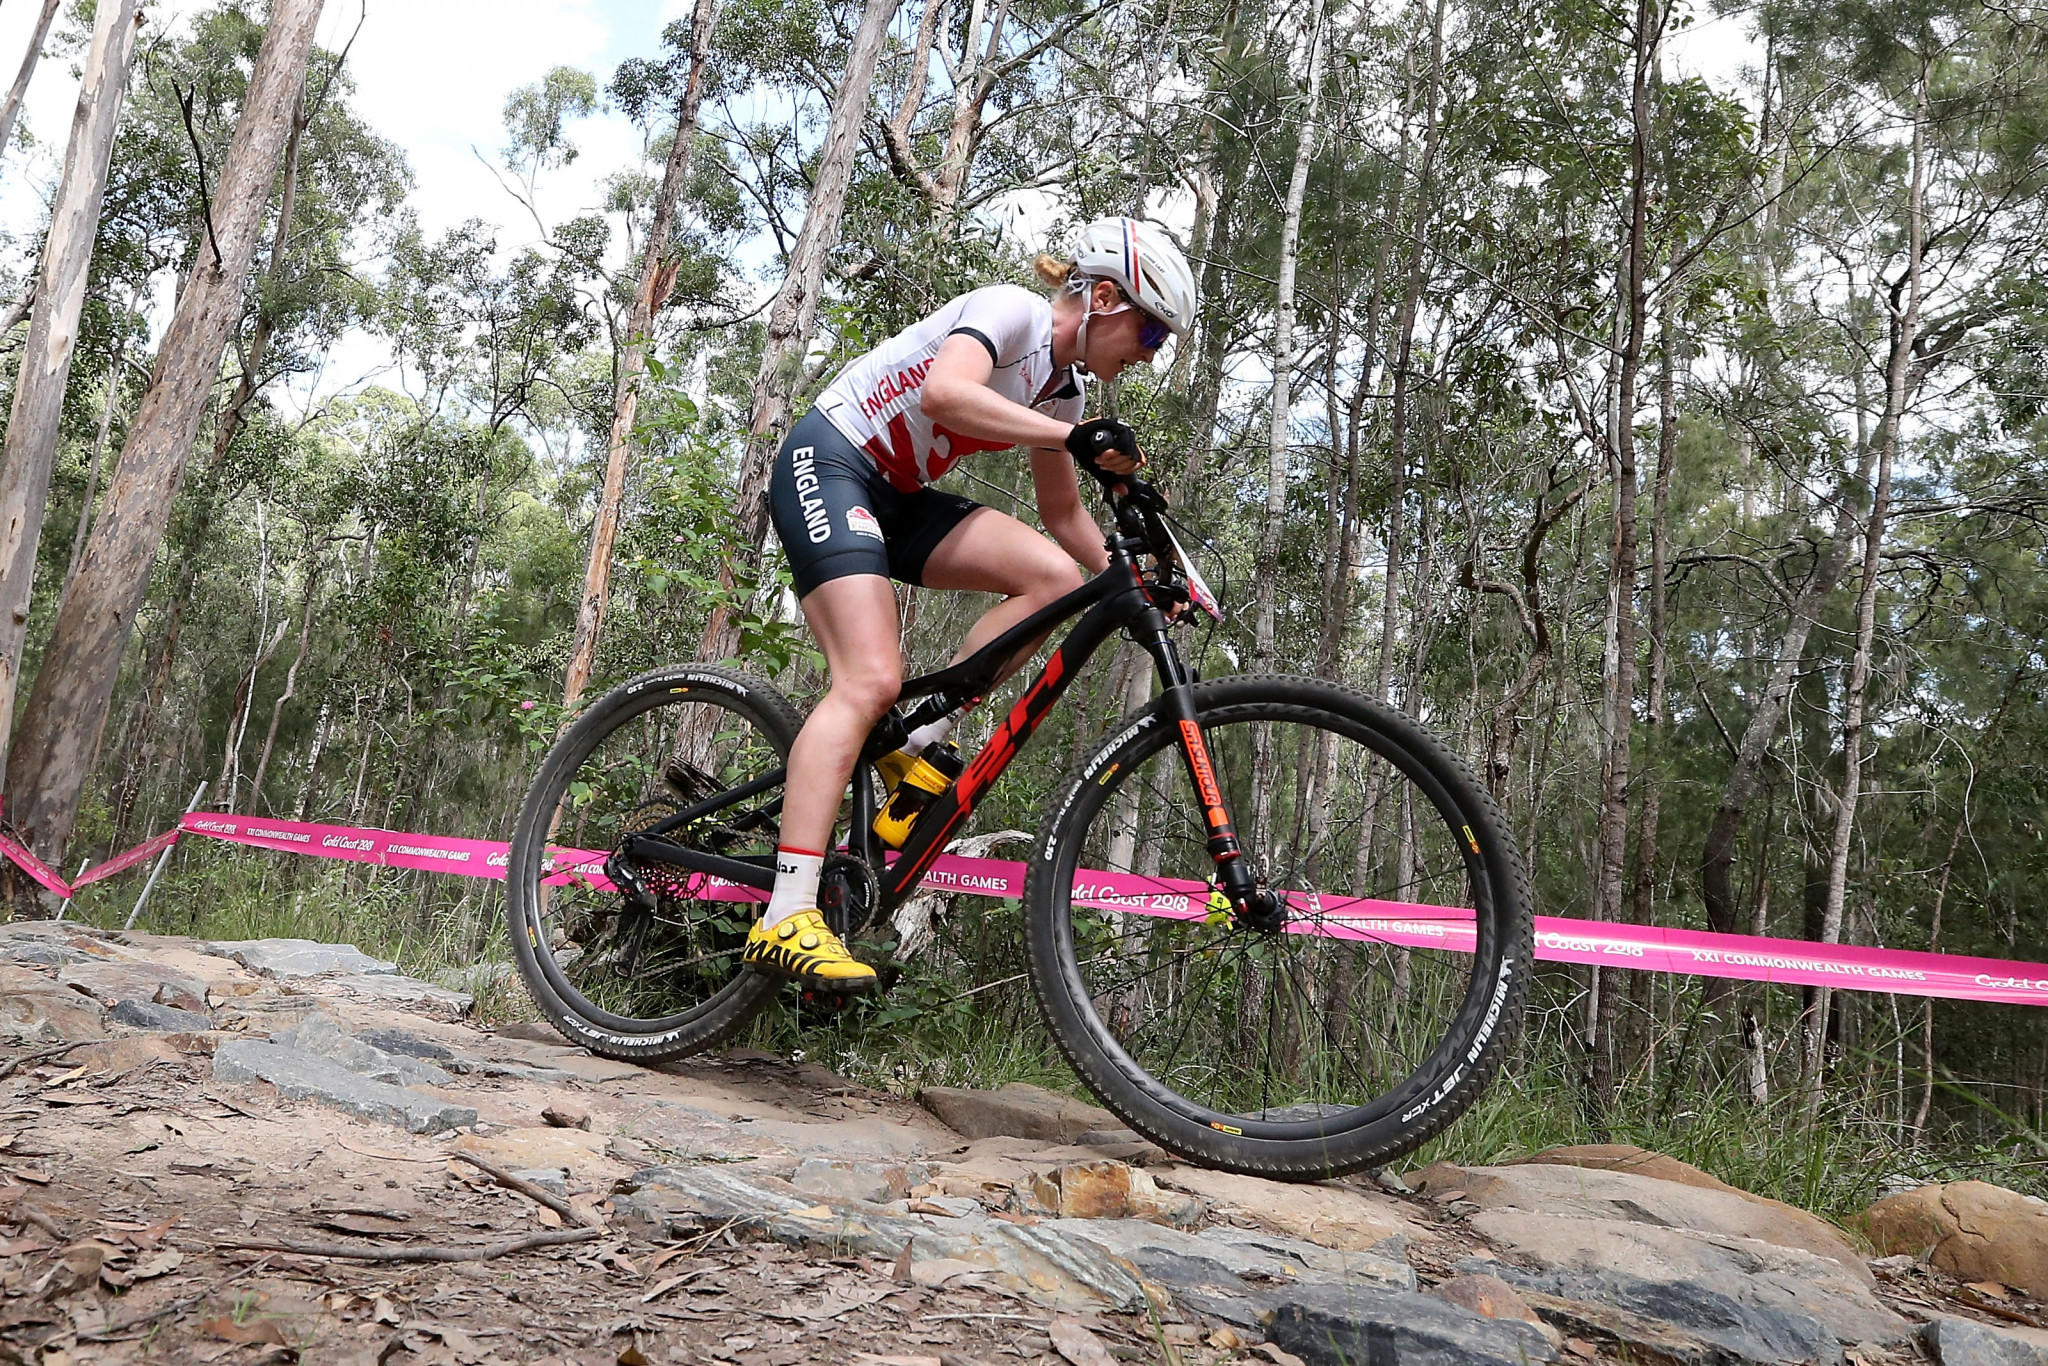 First for Last in women's mountain bike event at Gold Coast 2018 as England secure one-two